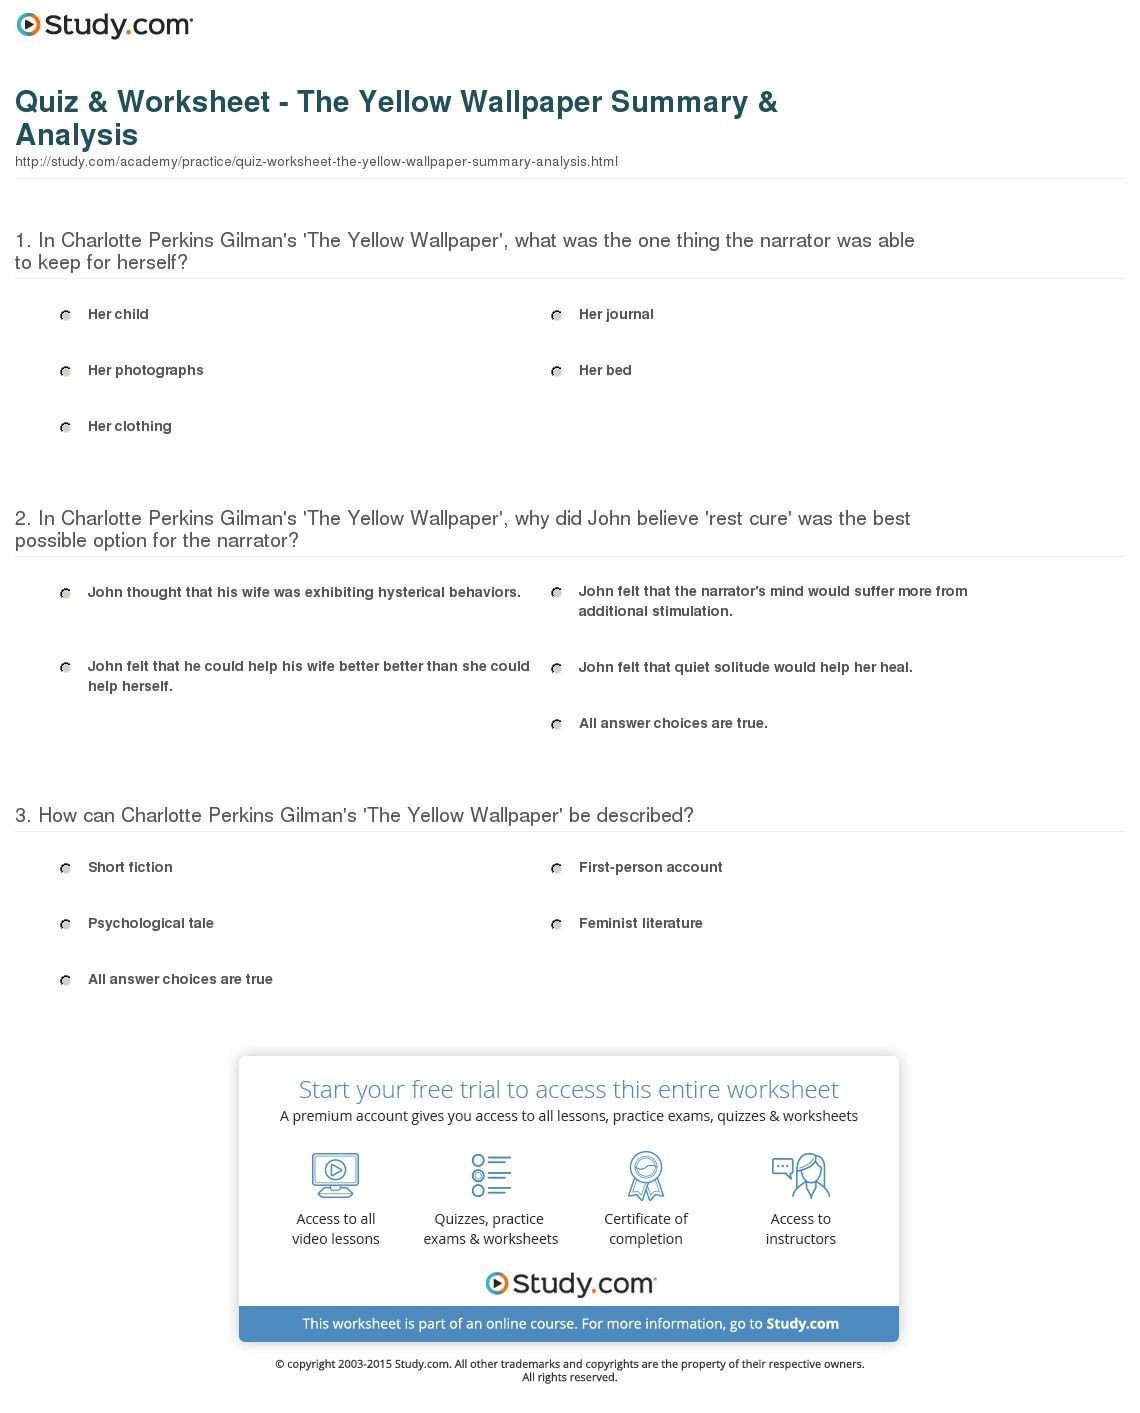 The Yellow Wallpaper Worksheet Answers Quiz Worksheet the Yellow Wallpaper Summary Analysis